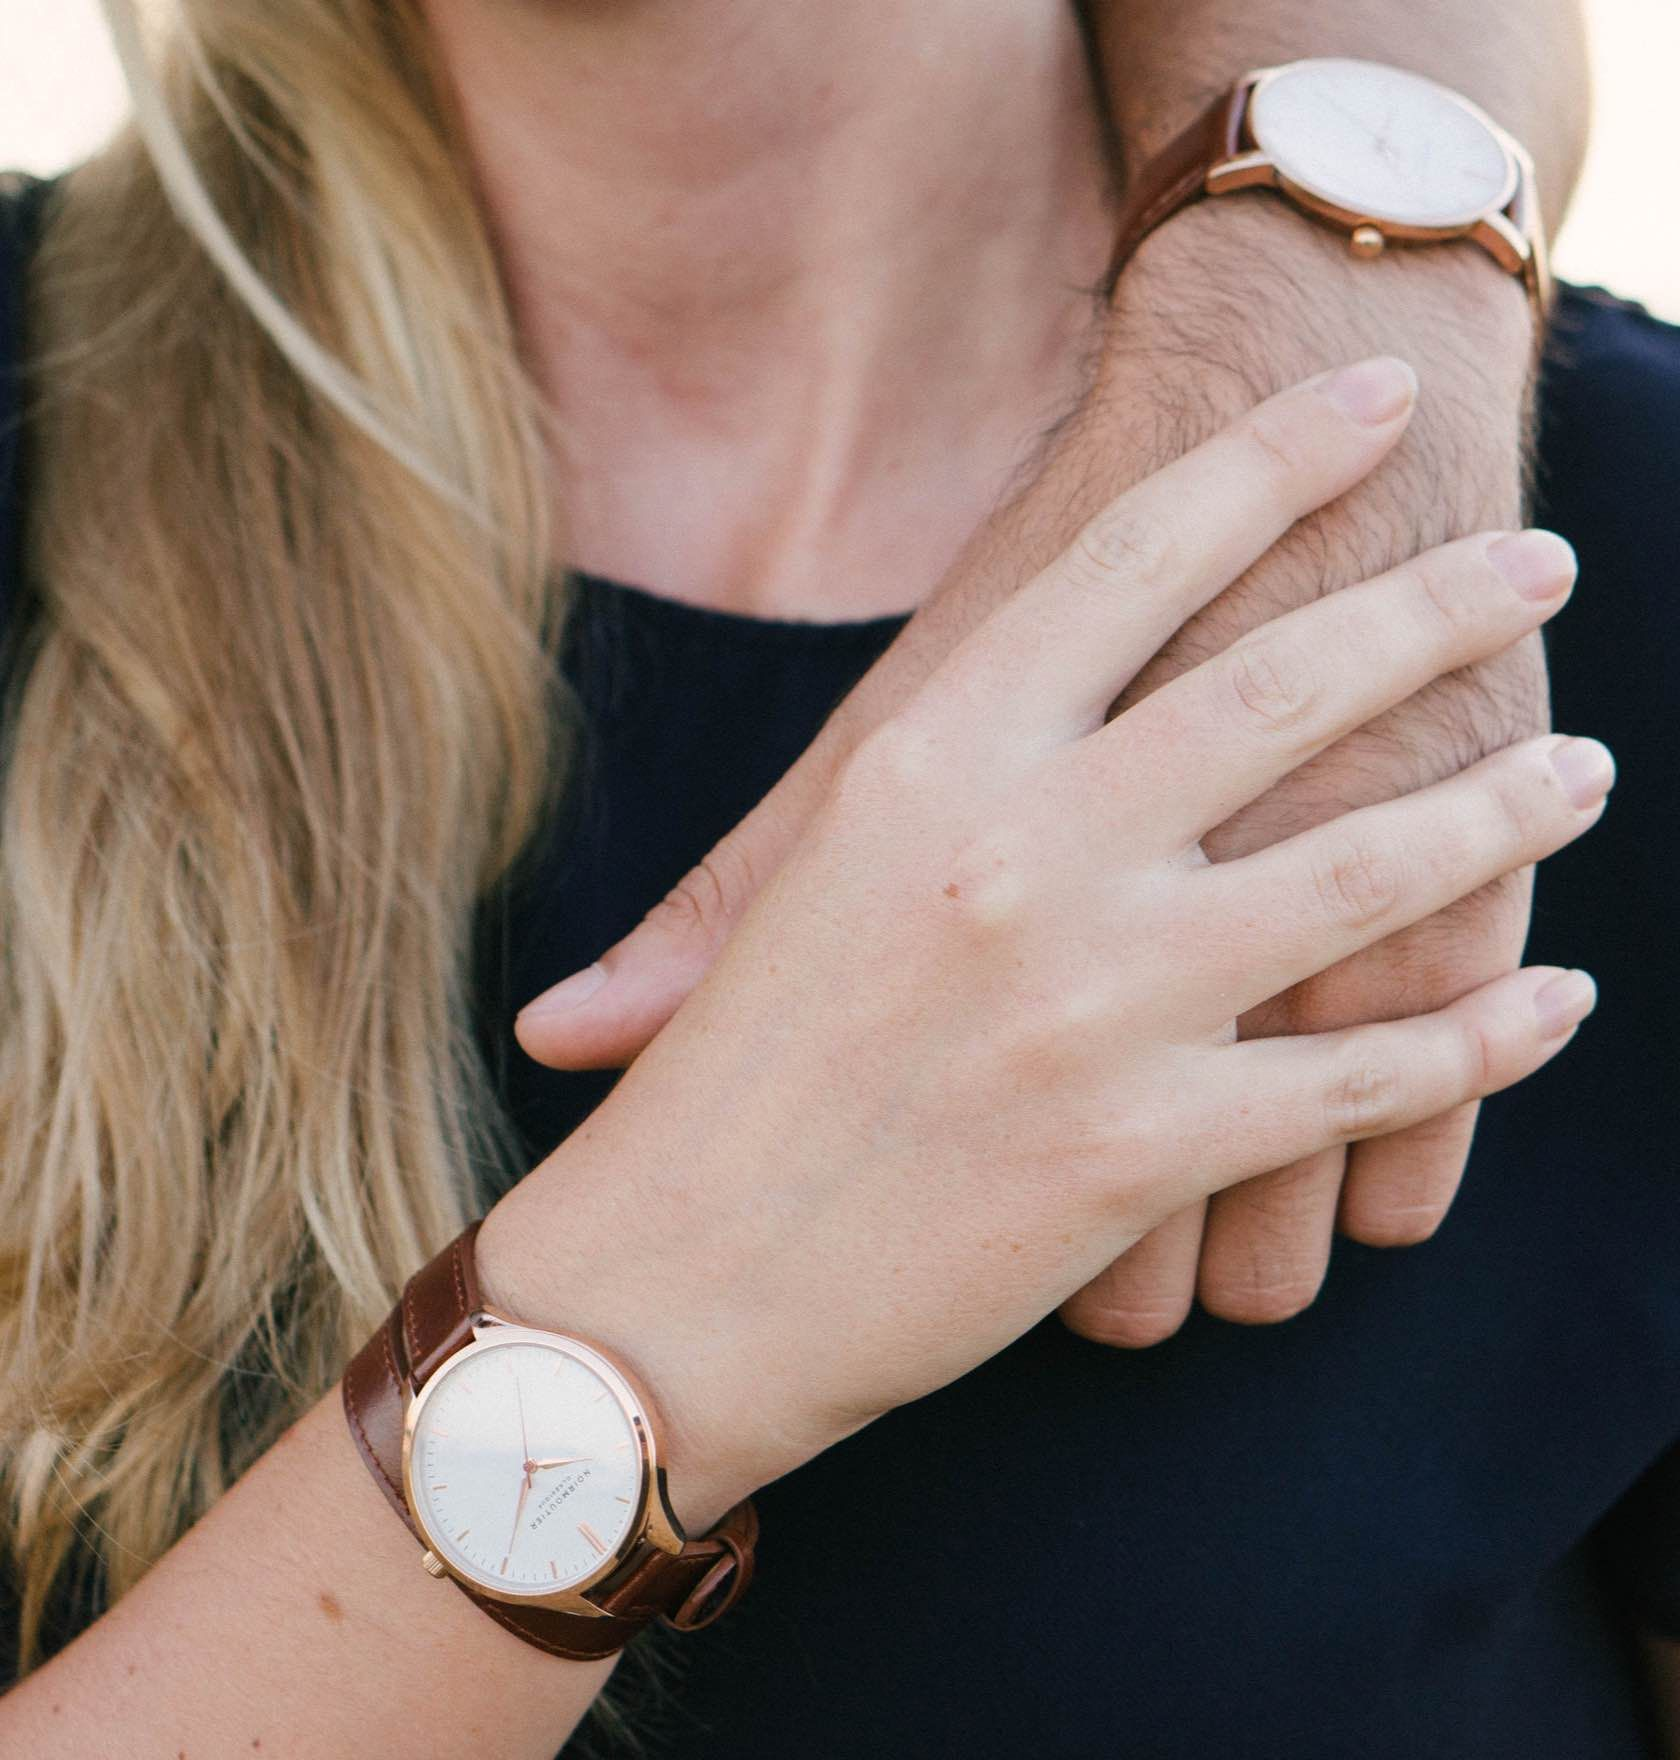 Sign up to reserve one of our Limited Edition Classique N1 watches and save $139 off retail price